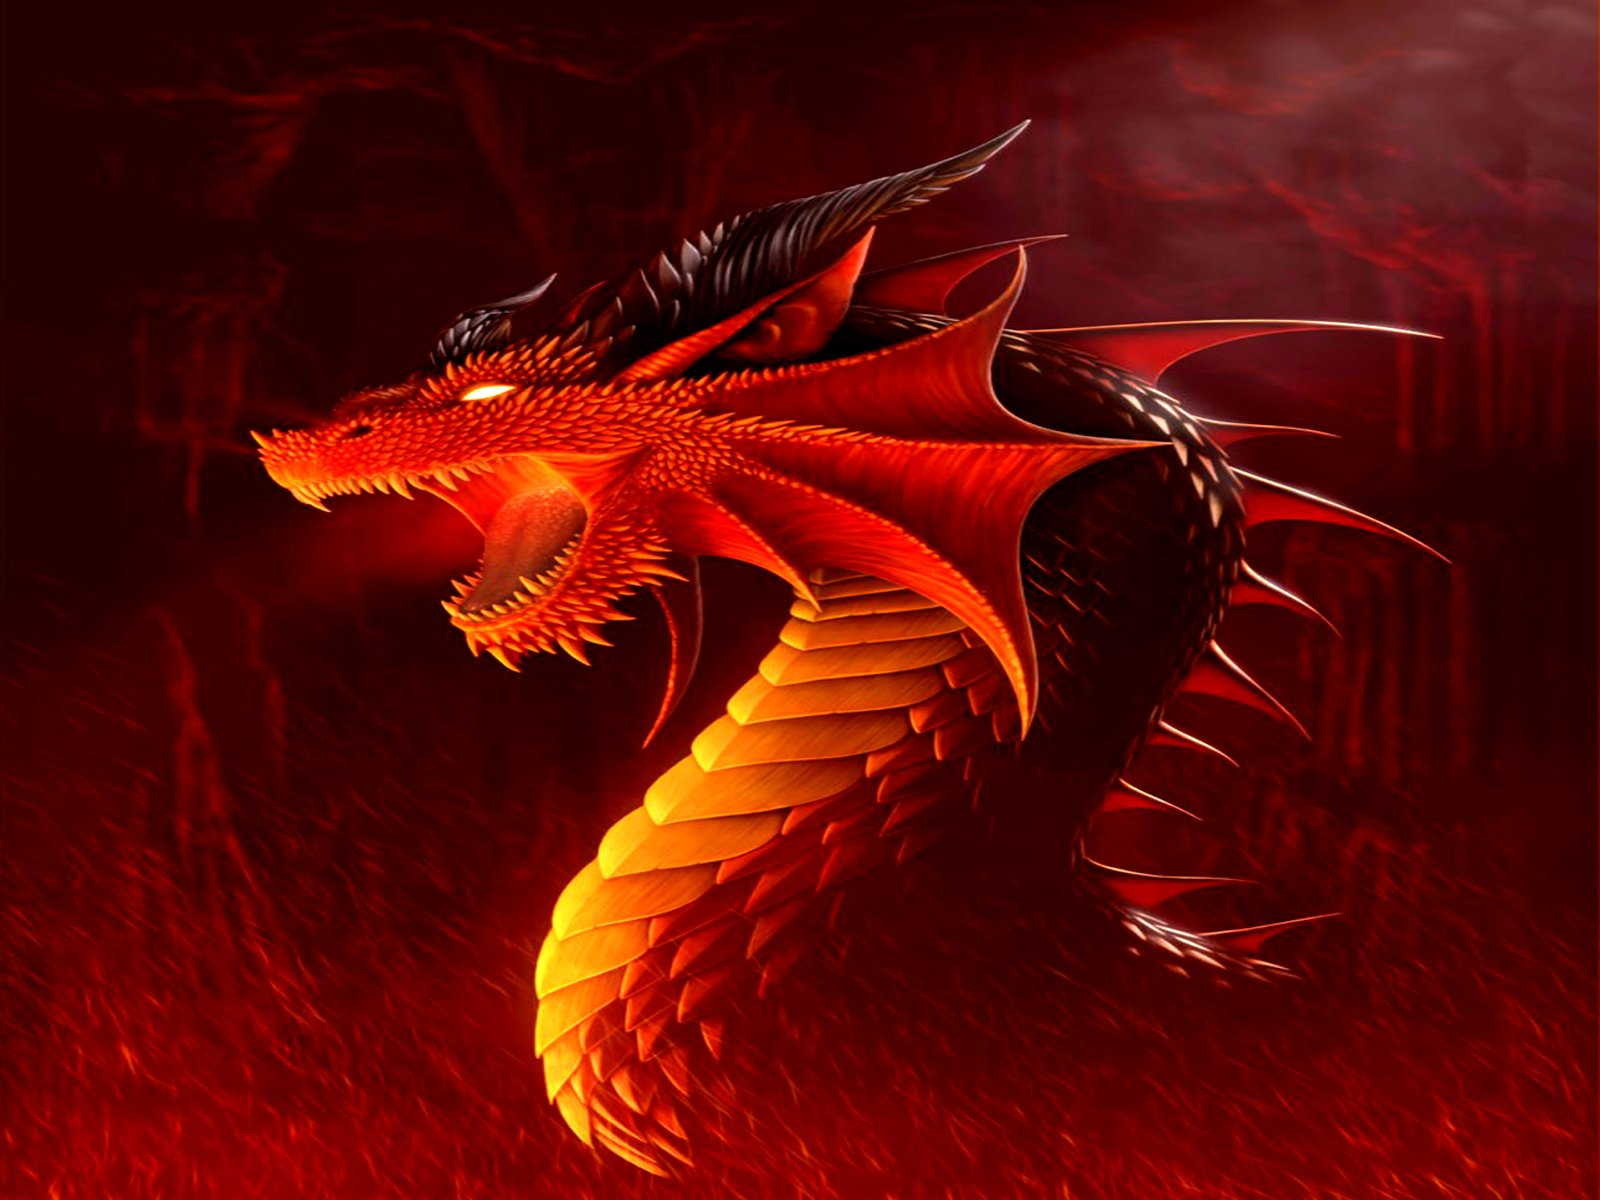 1697 Dragon HD Wallpapers | Backgrounds - Wallpaper Abyss